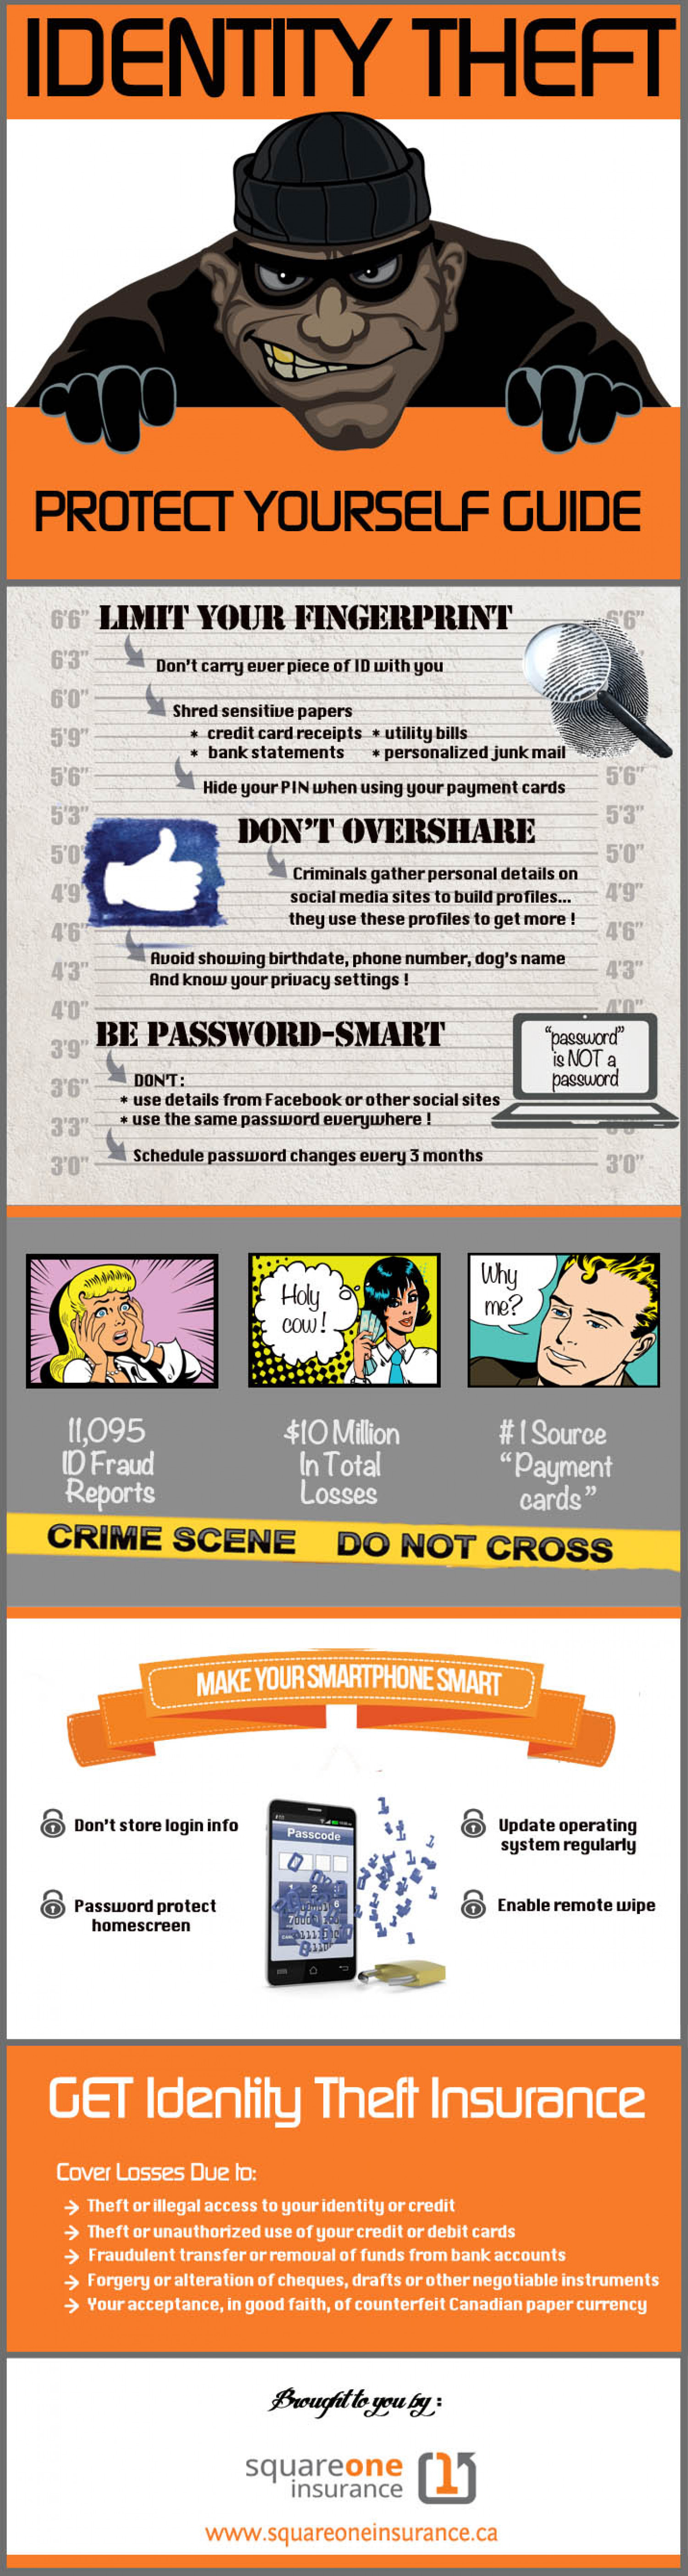 Identity Theft - Protect Yourself Guide Infographic